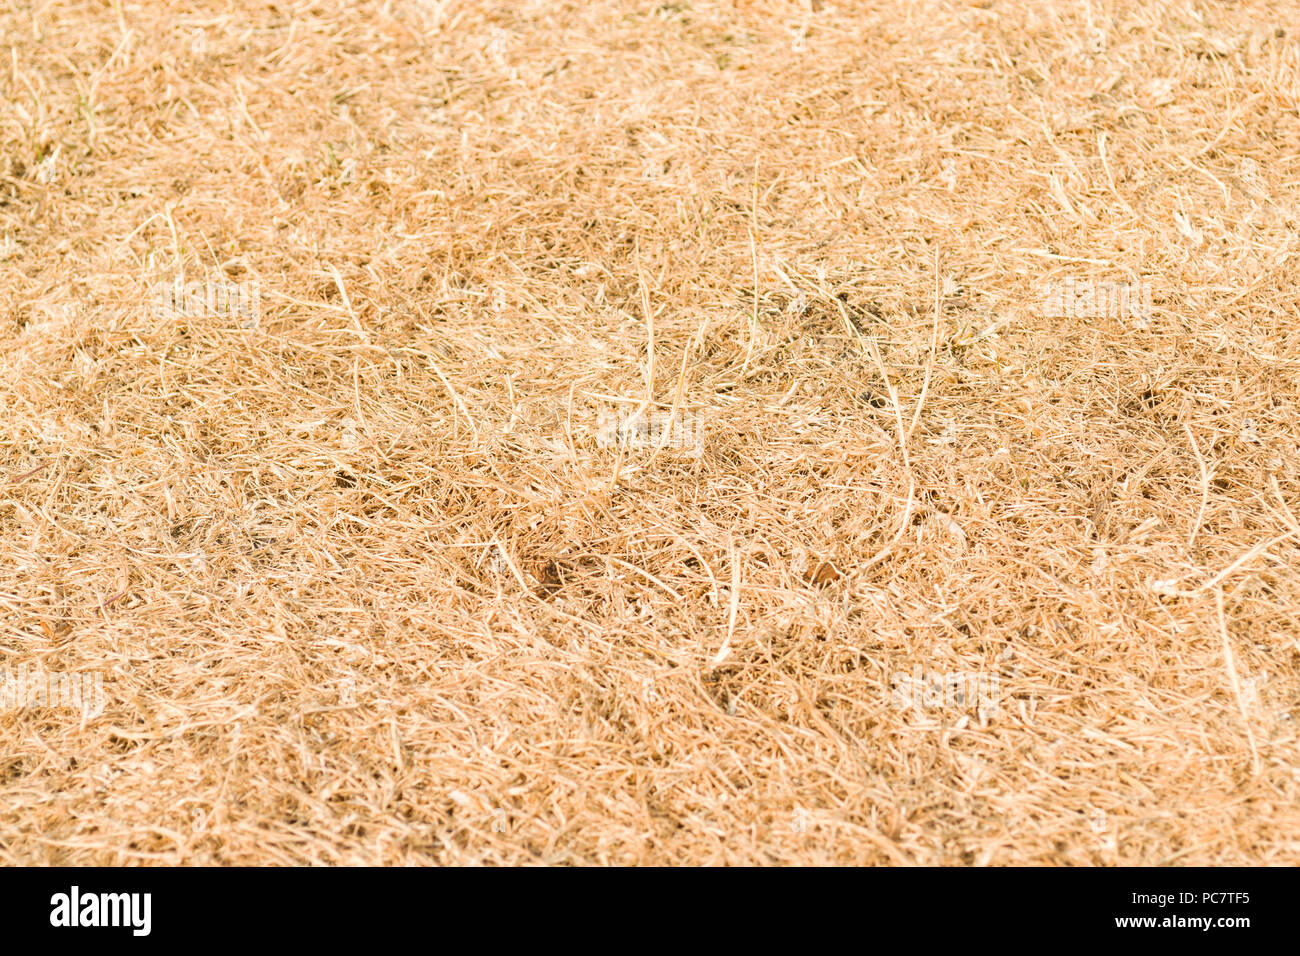 A lawn of dry orange grass due to the record Summer heatwave in the United Kingdom in 2018 - Stock Image